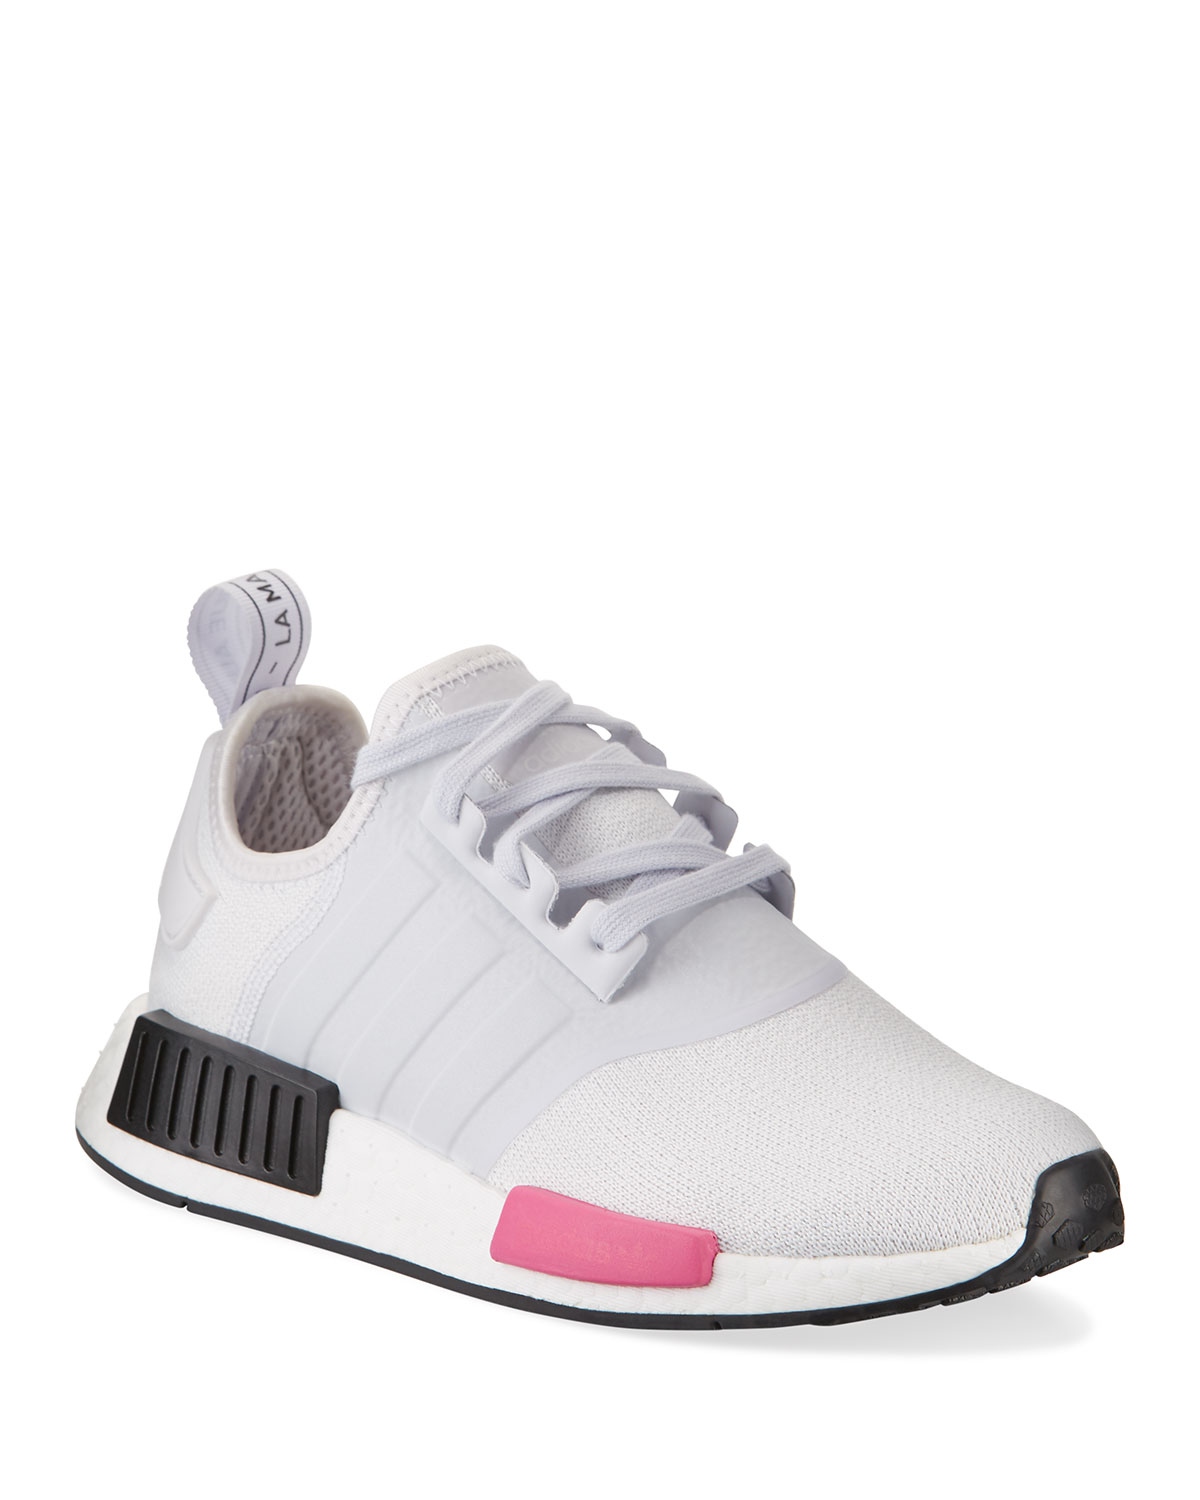 NMD R1 Lace Up Sneakers